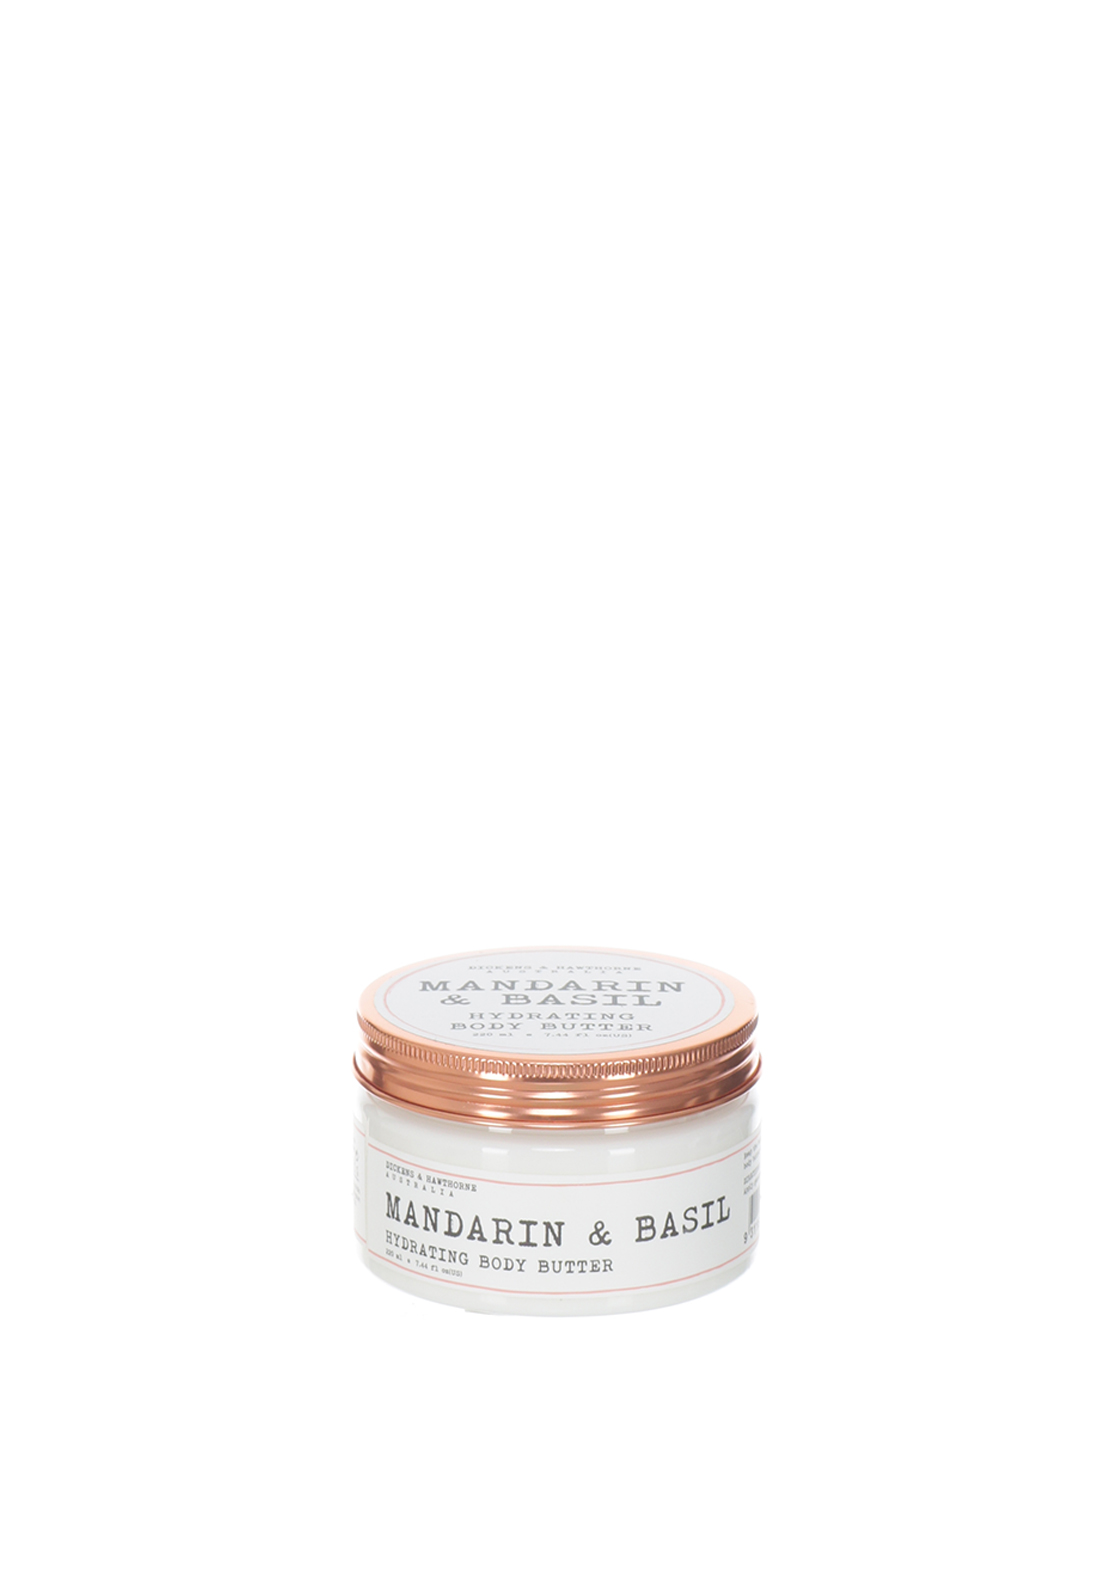 Dickens & Hawthorne Mandarin & Basil Hydrating Body Butter, 220ml